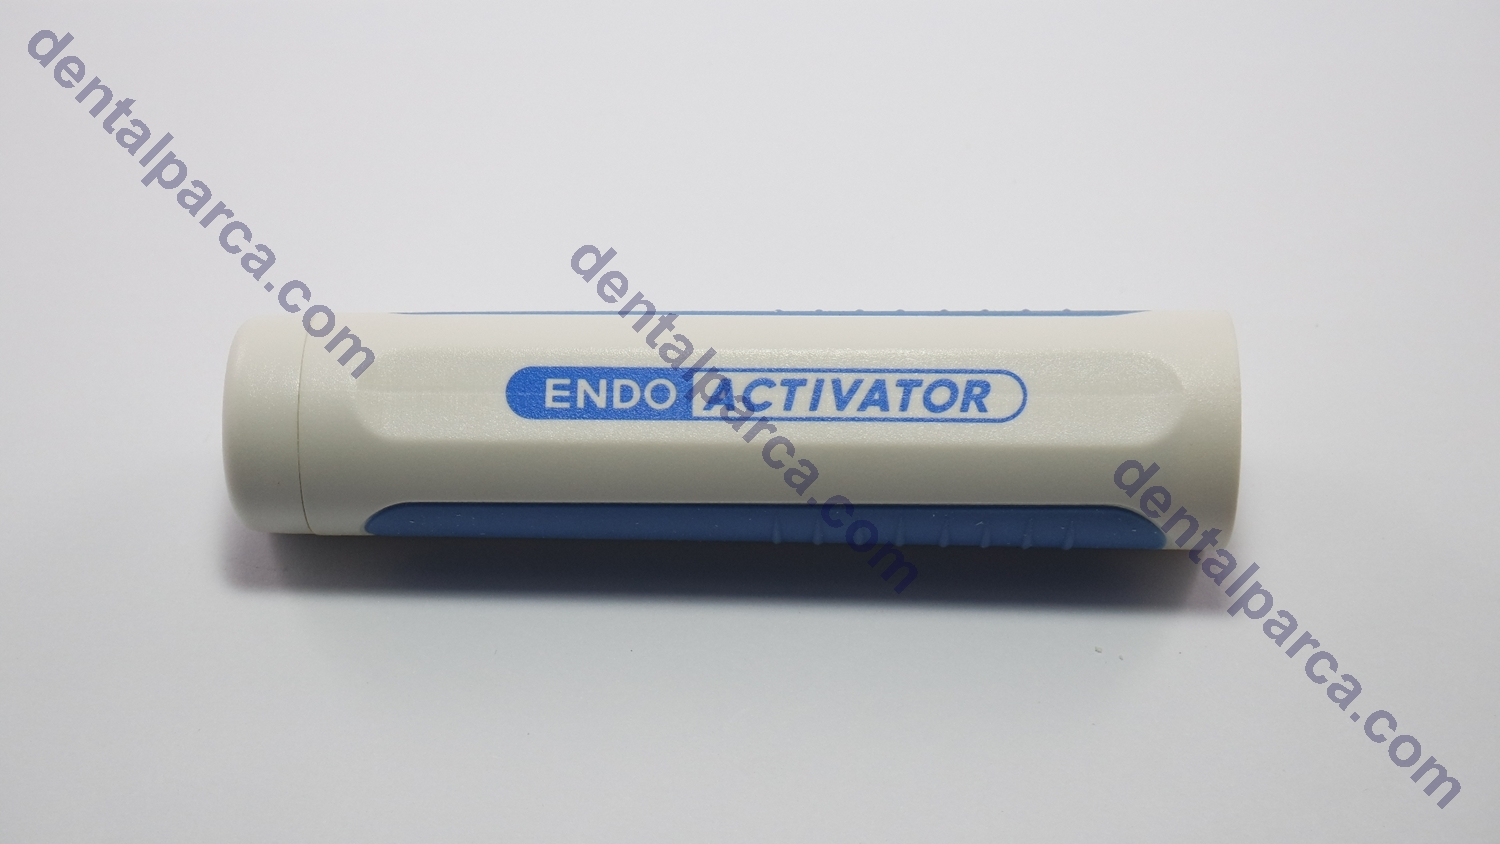 ENDOACTIVATOR BATTERY HOUSING resmi